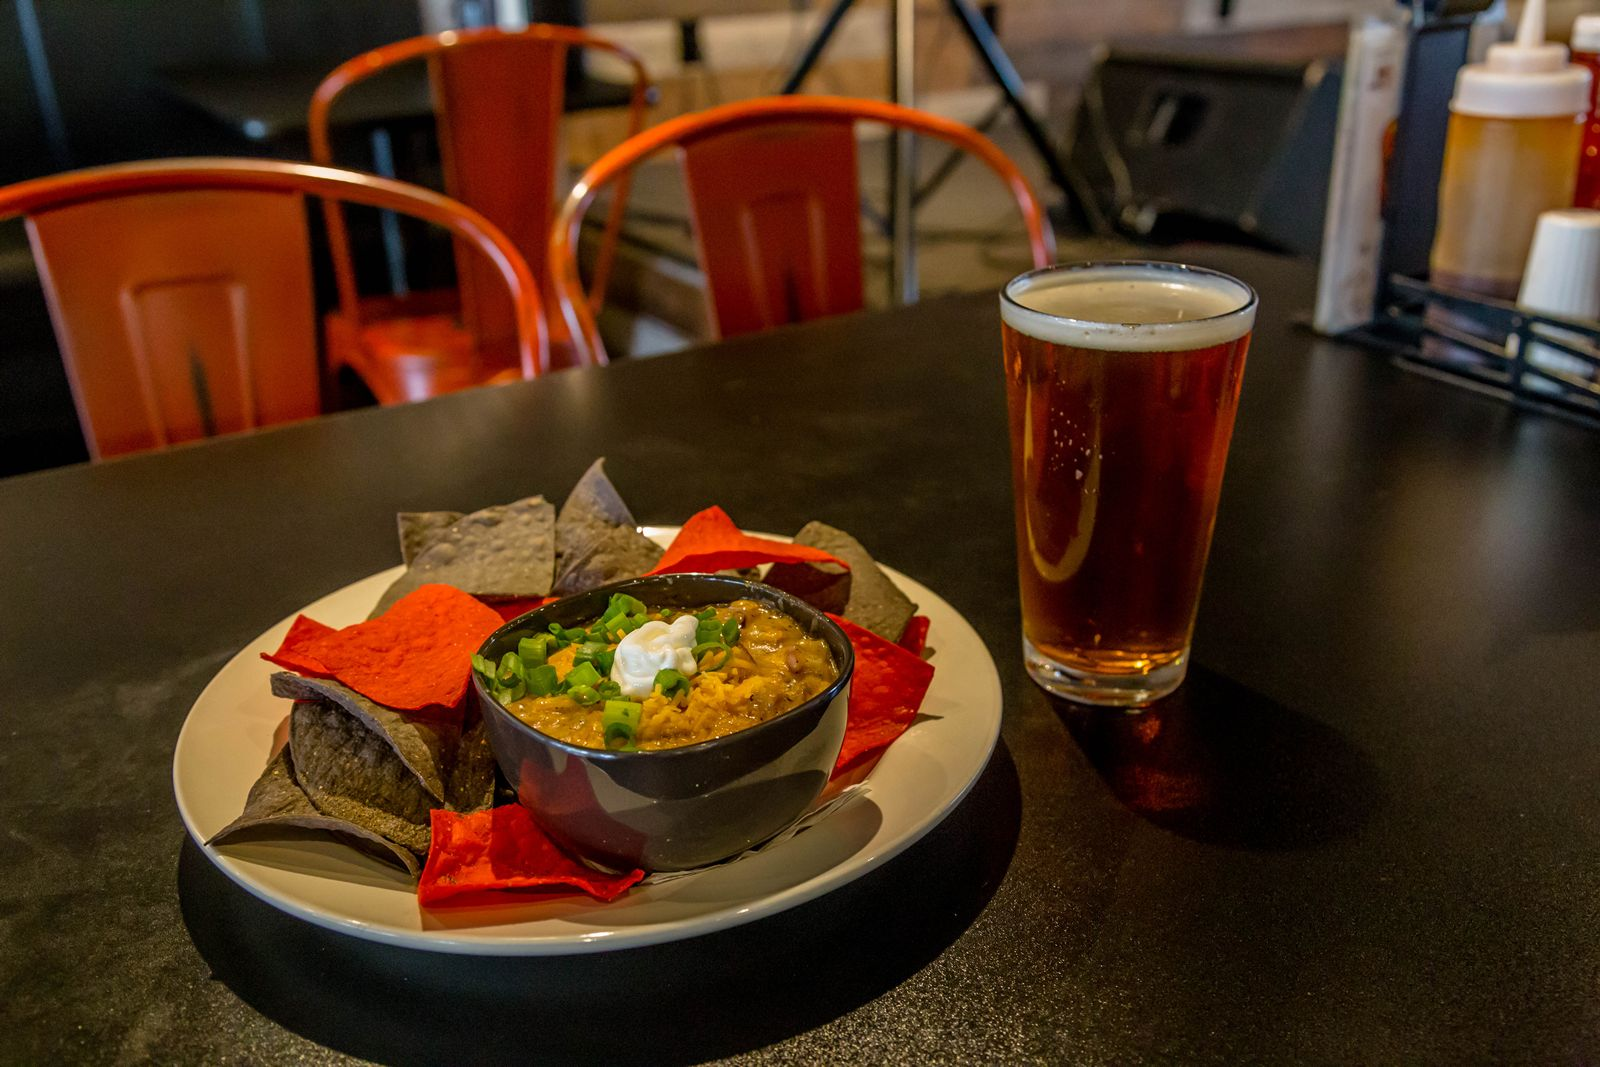 West Alley BBQ & Smokehouse Smoked Brisket Bacon Dip